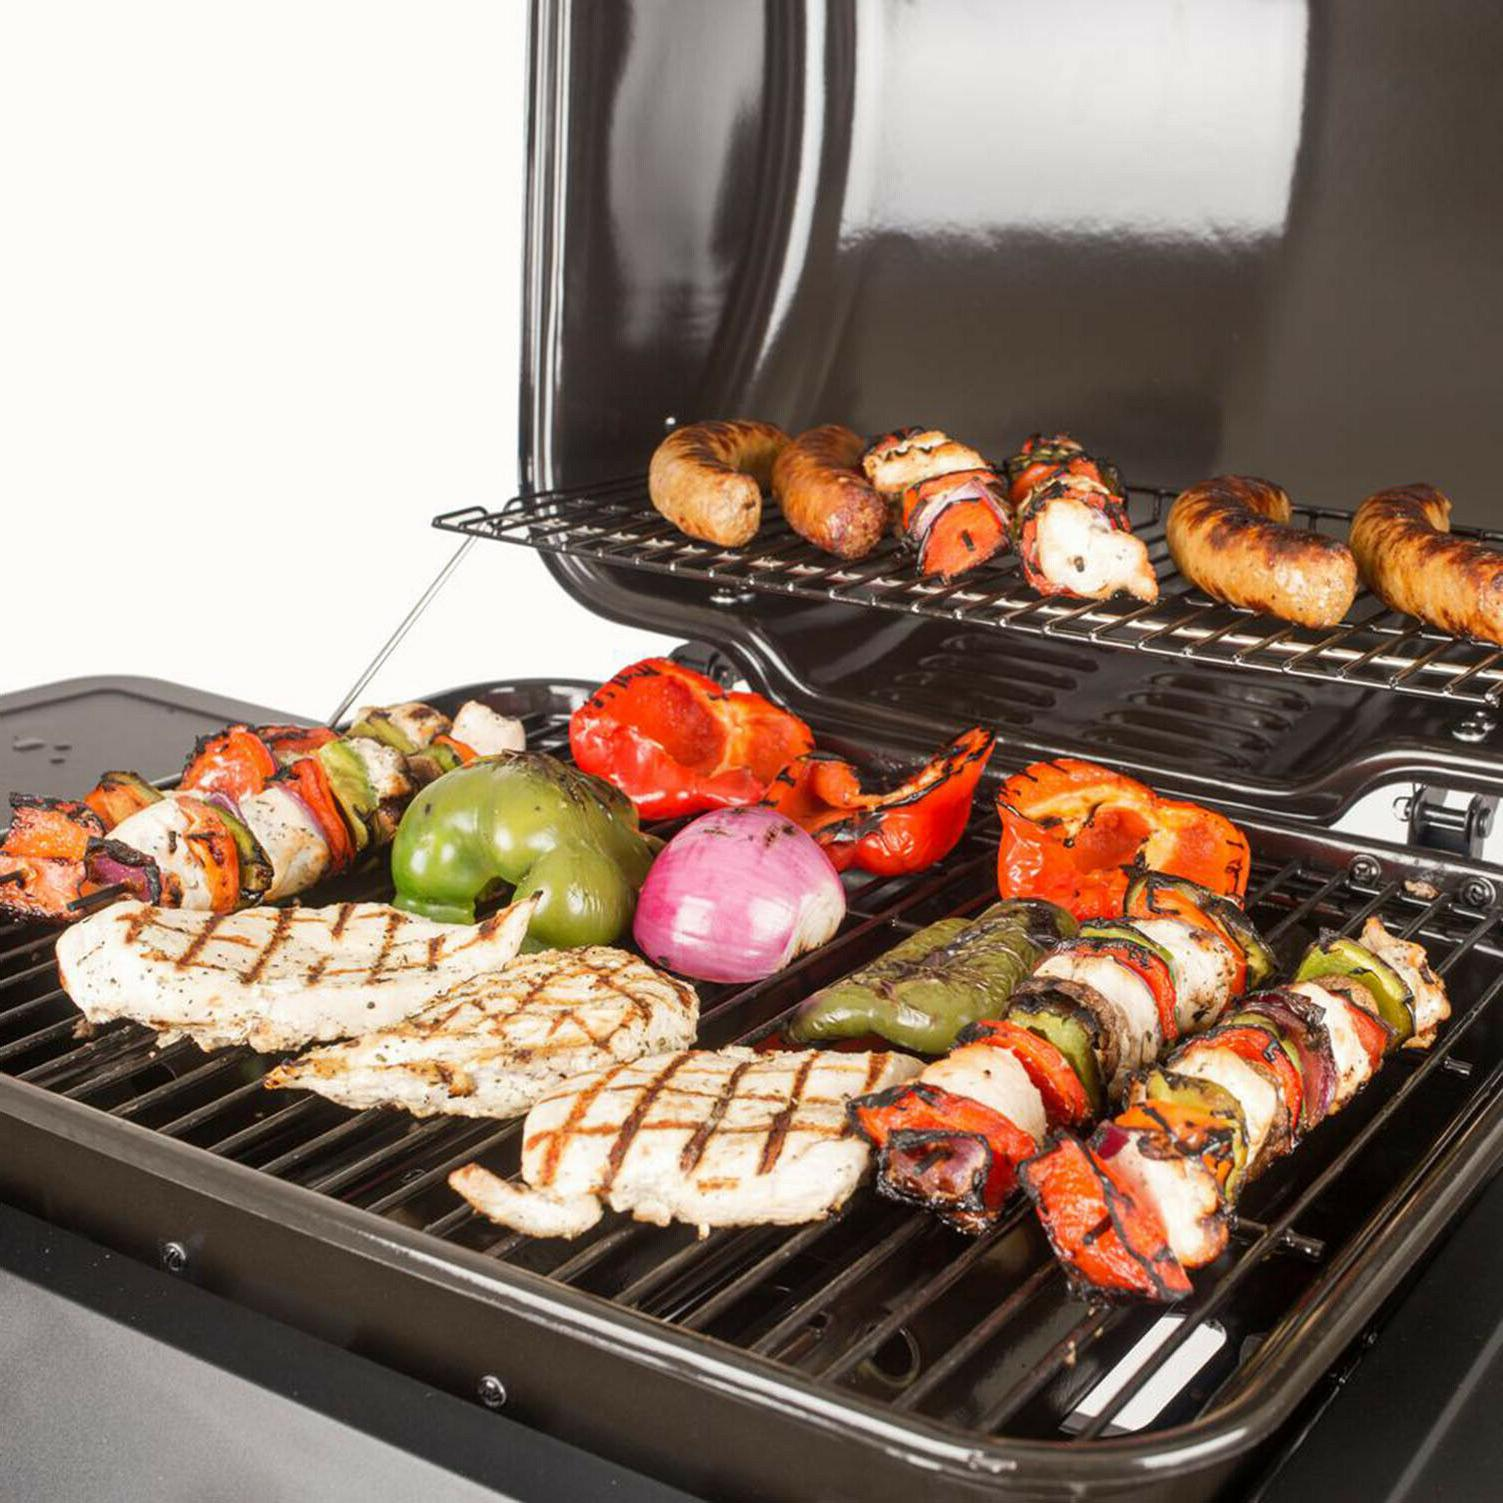 BBQ Grill Propane 3-Burner Black Porcelain Coated